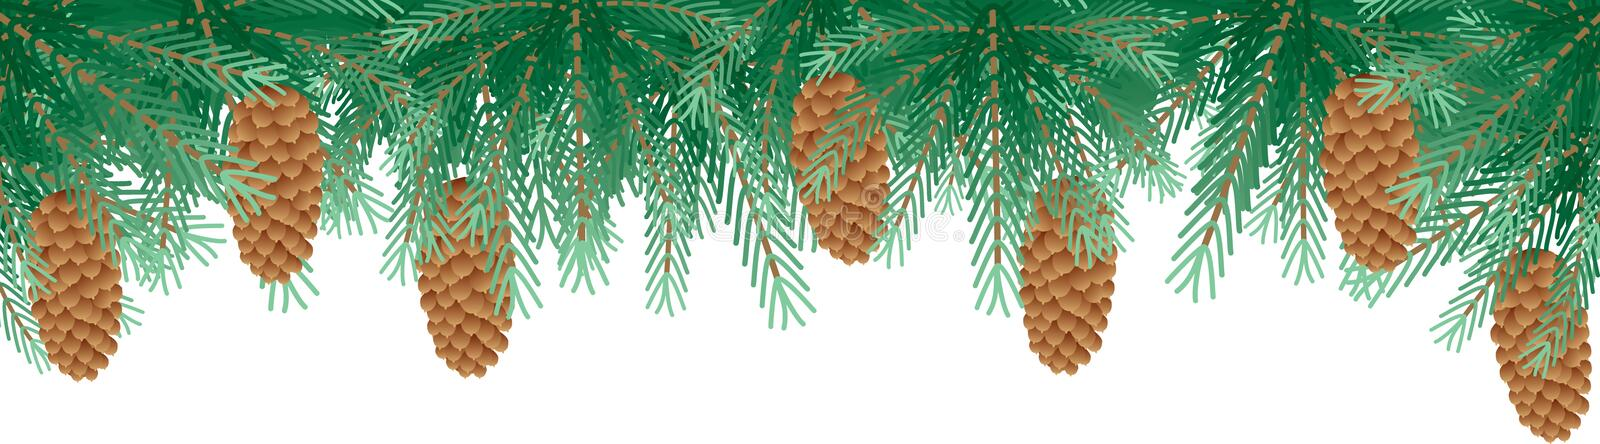 Download Pine Branches Stock Photo - Image: 3063280